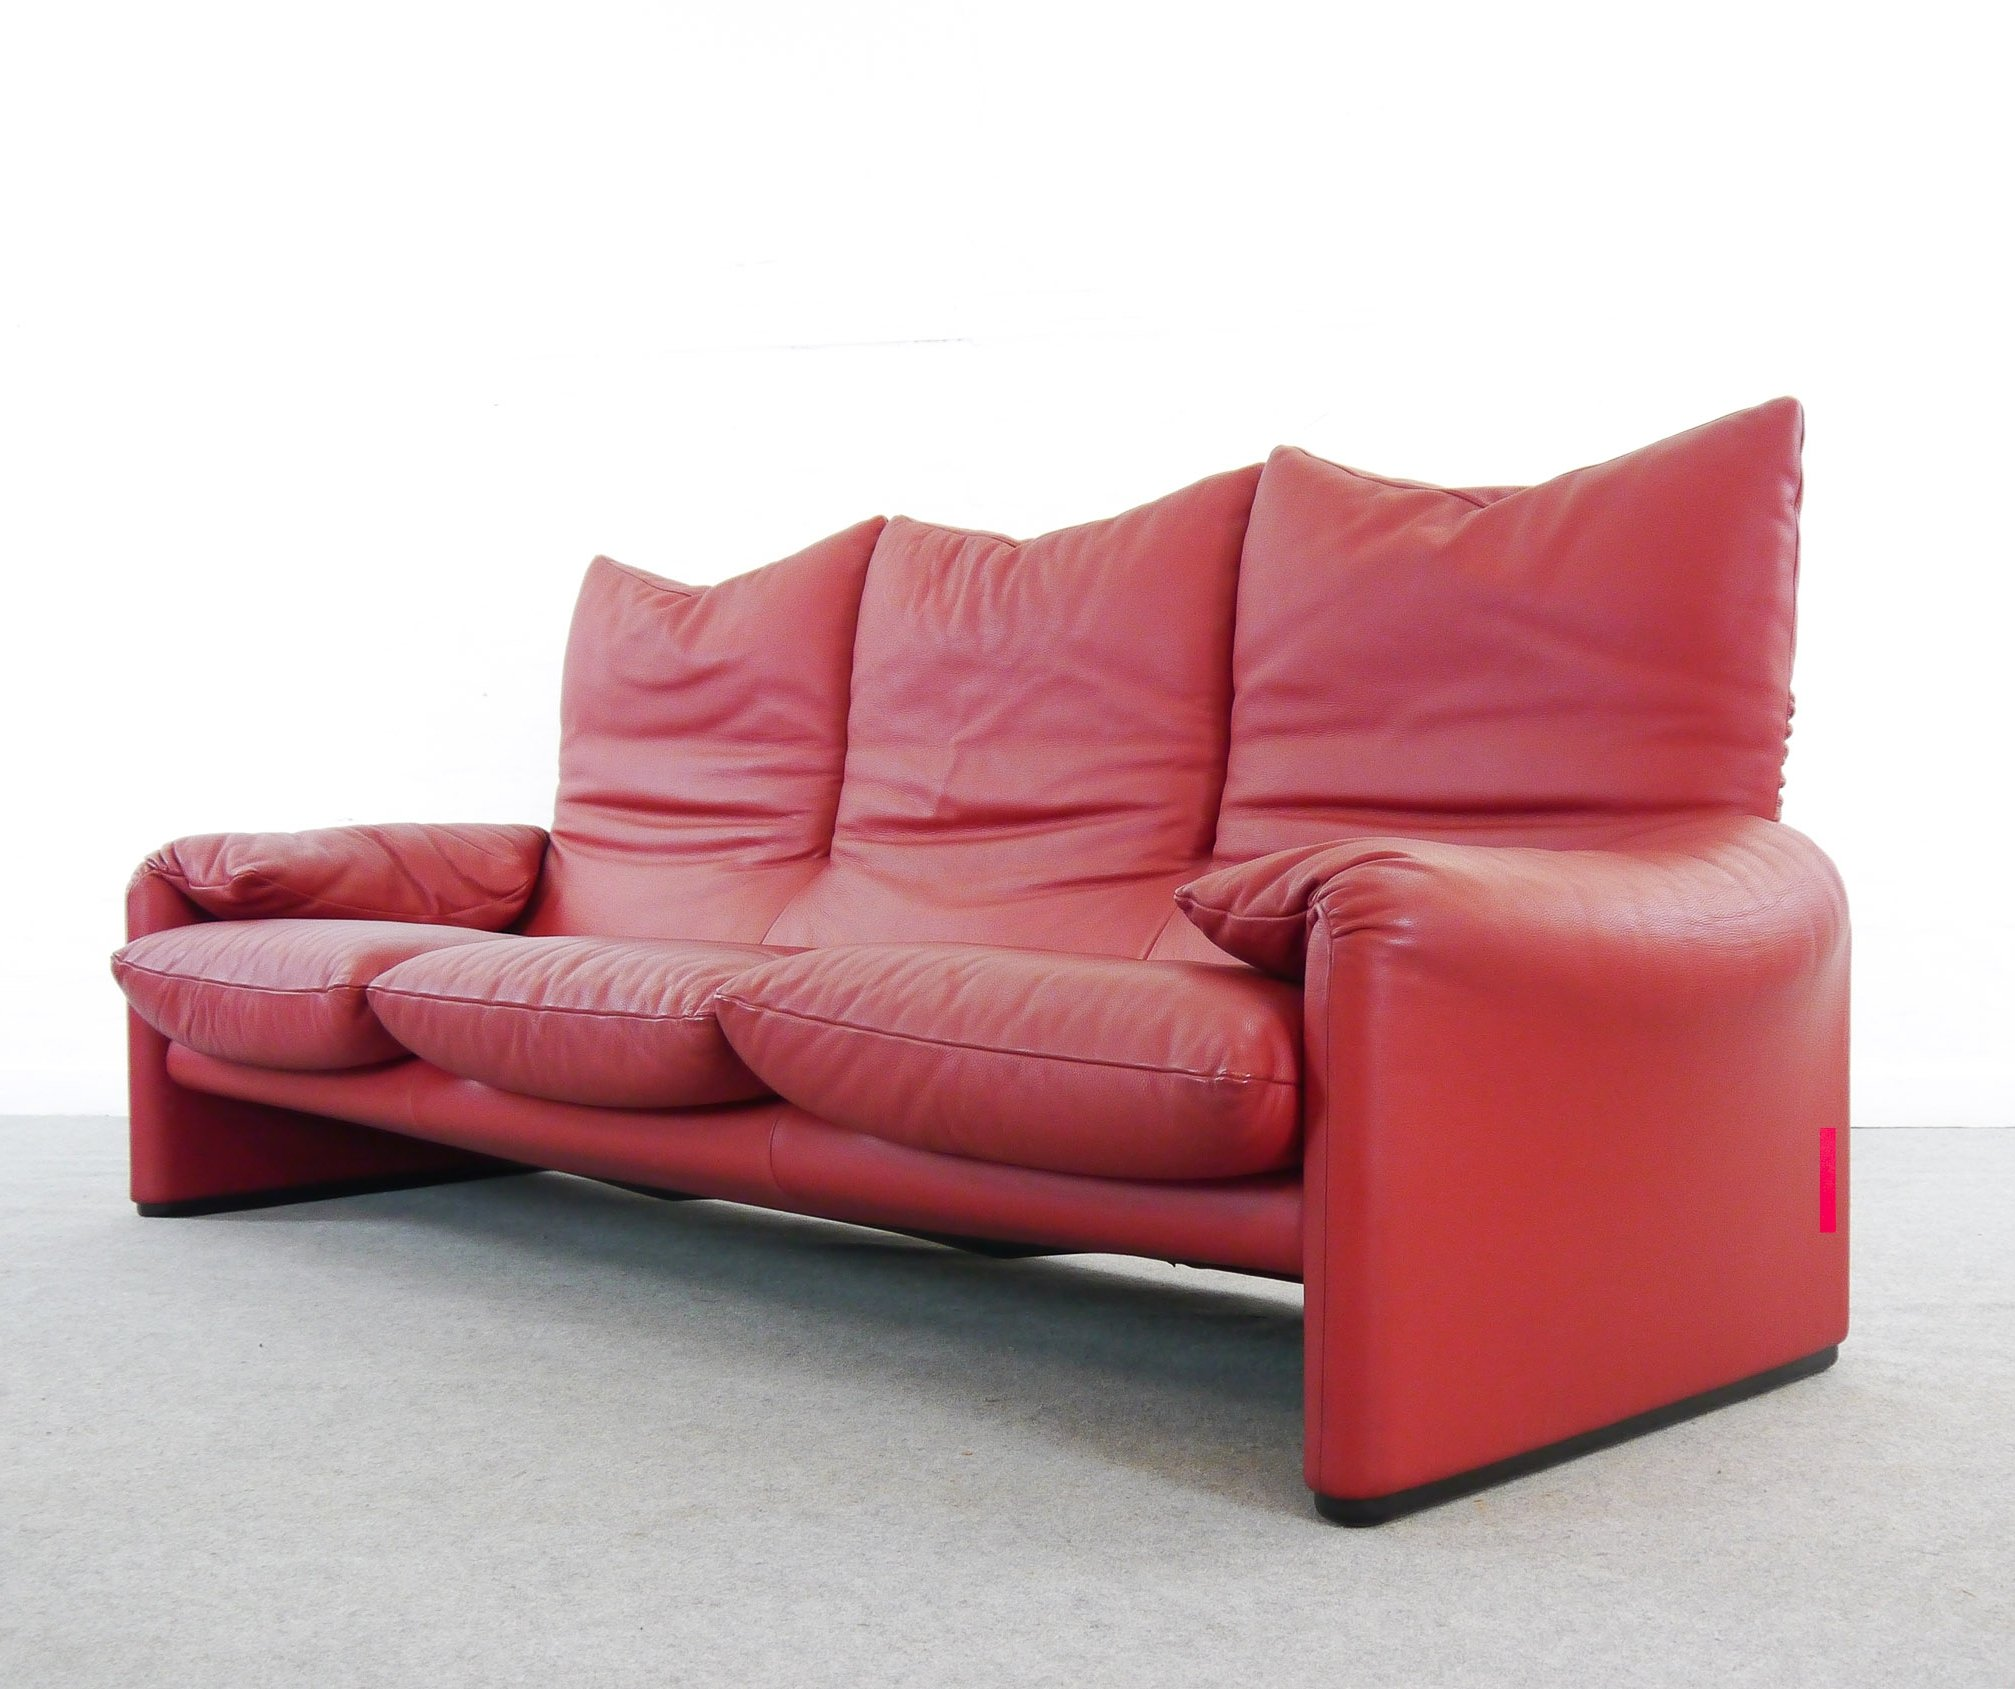 - Red Leather Maralunga 3seater Sofa By Vico Magistretti For Cassina